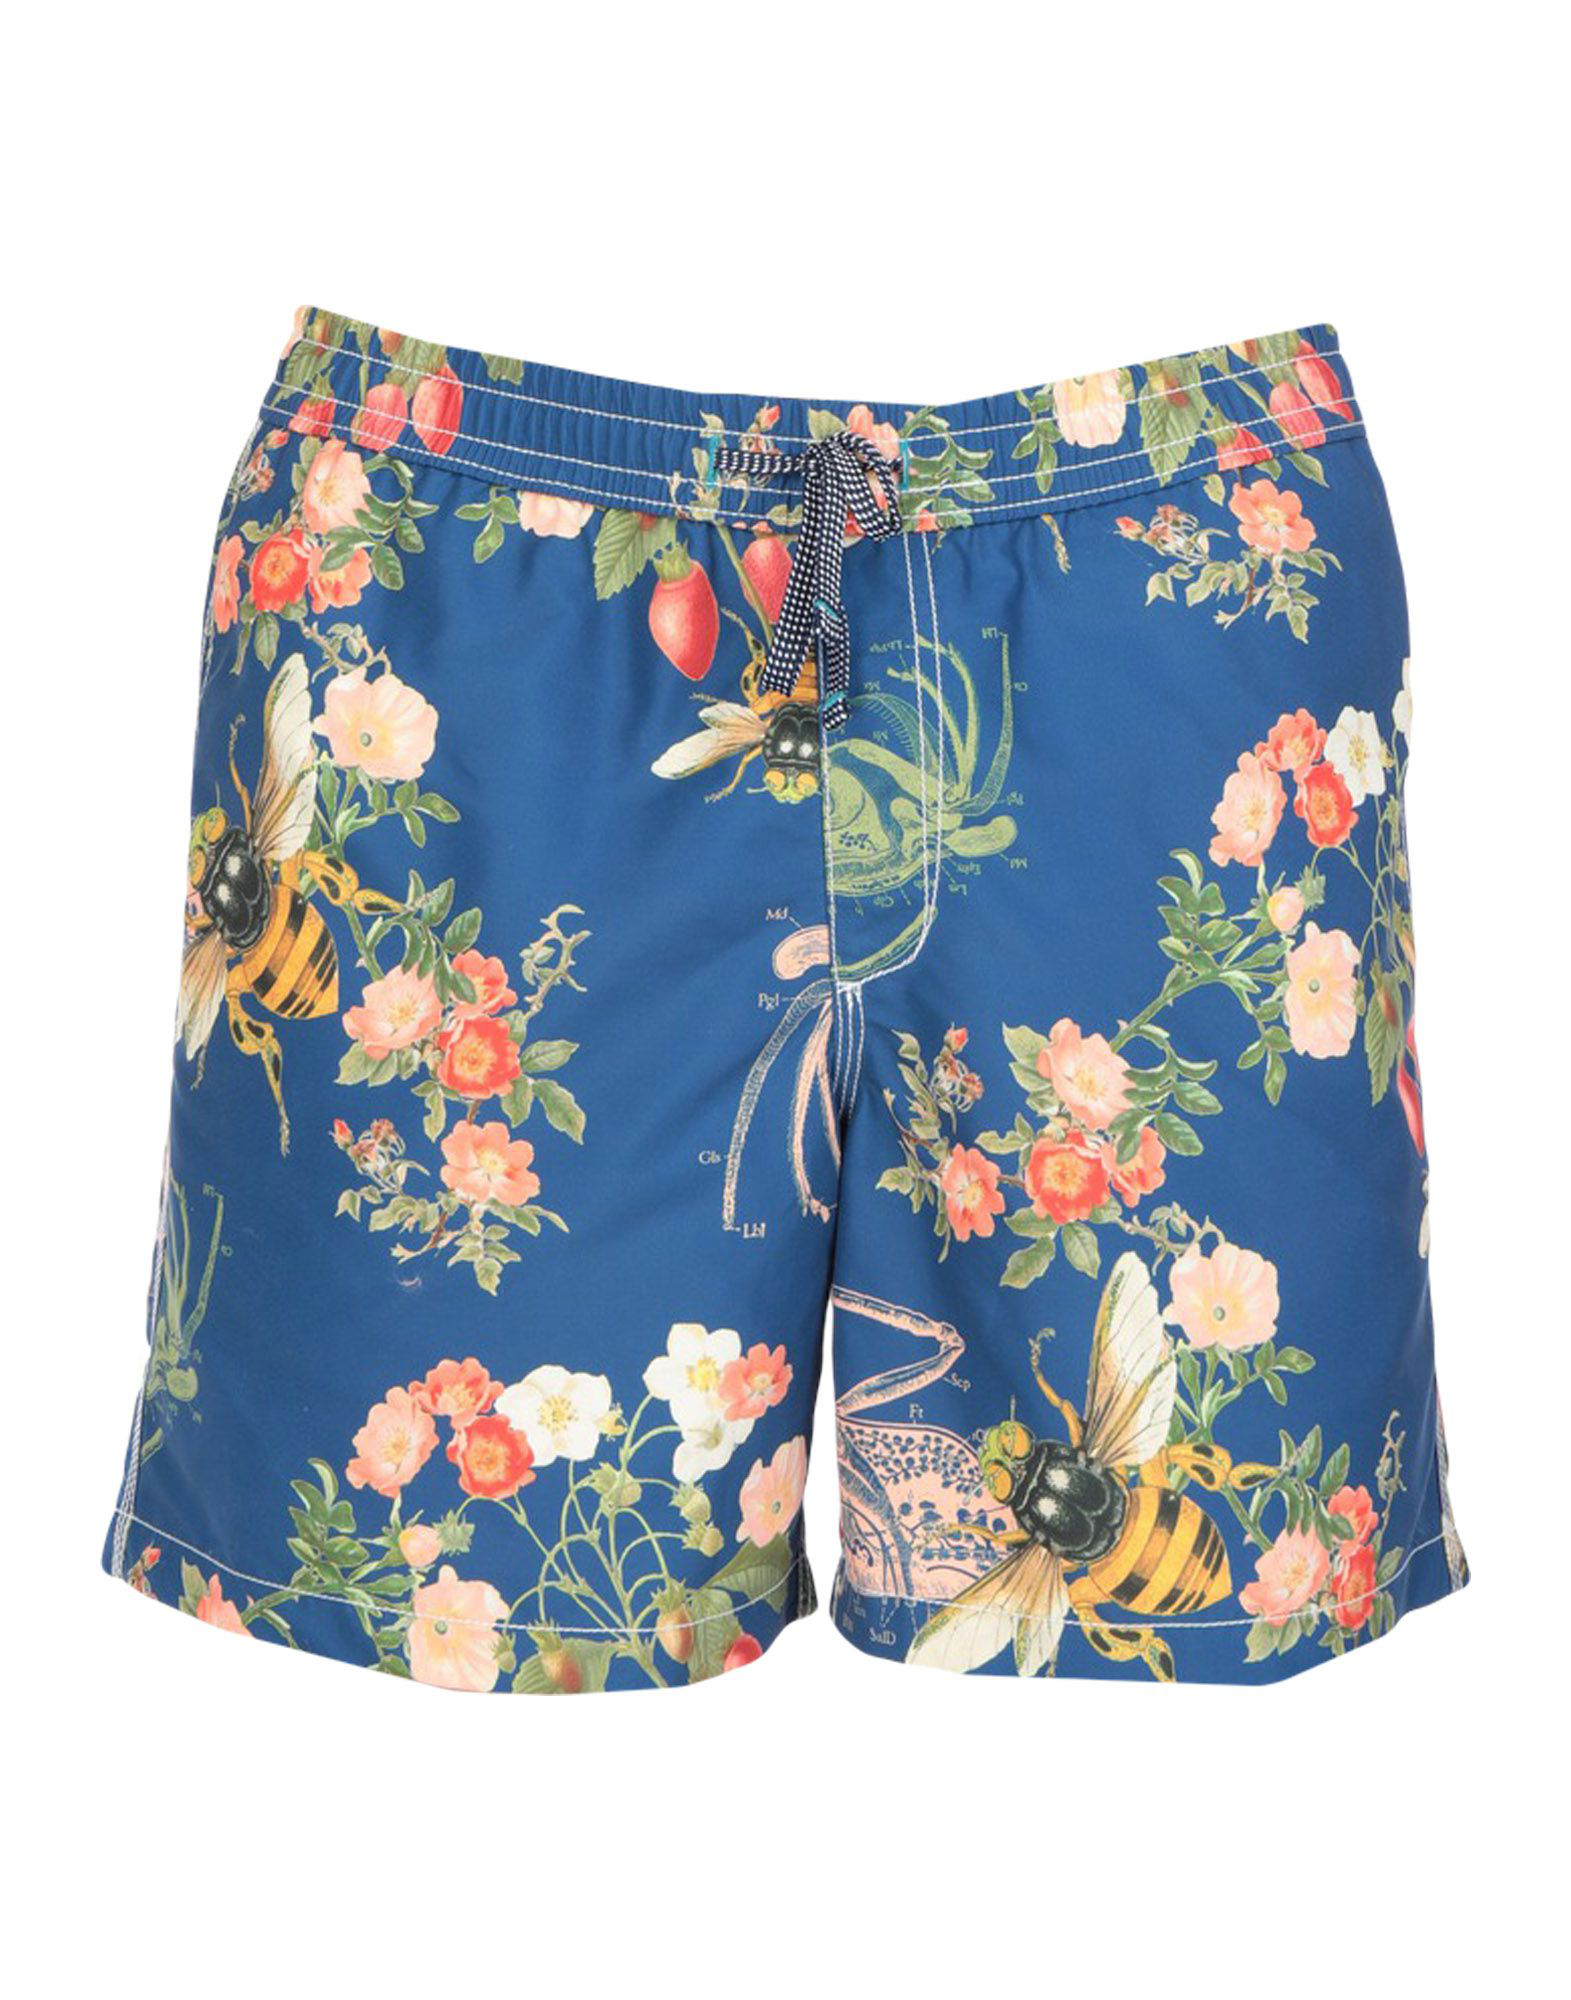 Shorts Blue Swim In Swim Shorts In Blue Swim Dark Shorts In Dark kXwPNn08O